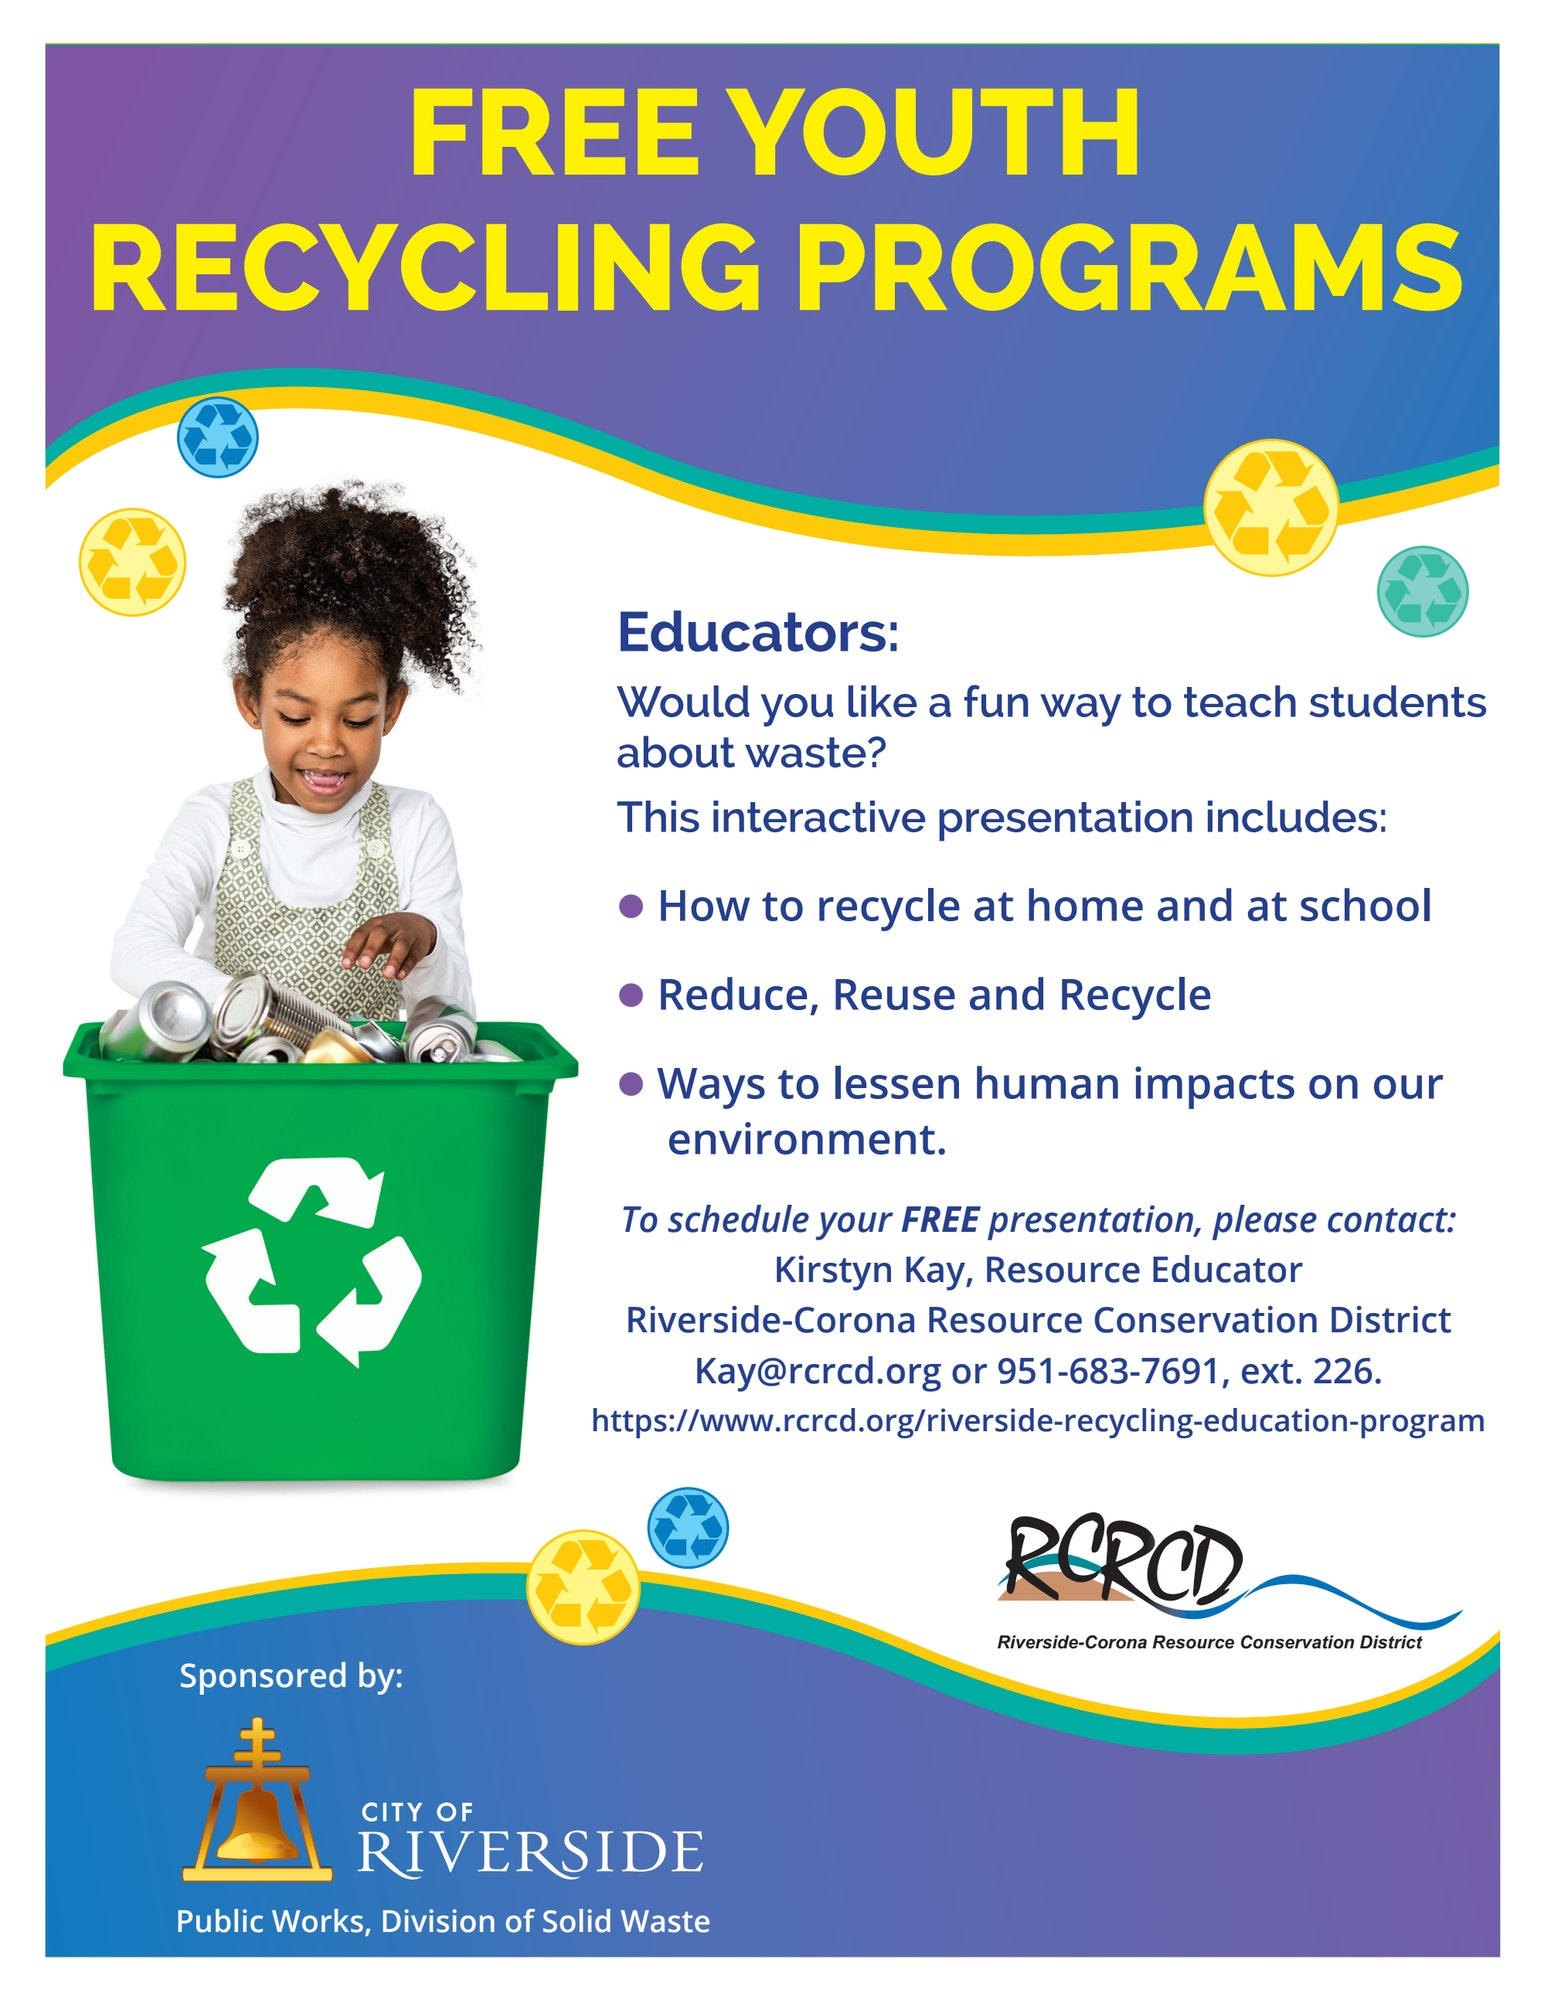 Flyer of information for recycling program with image of little girl and a recycling bin.